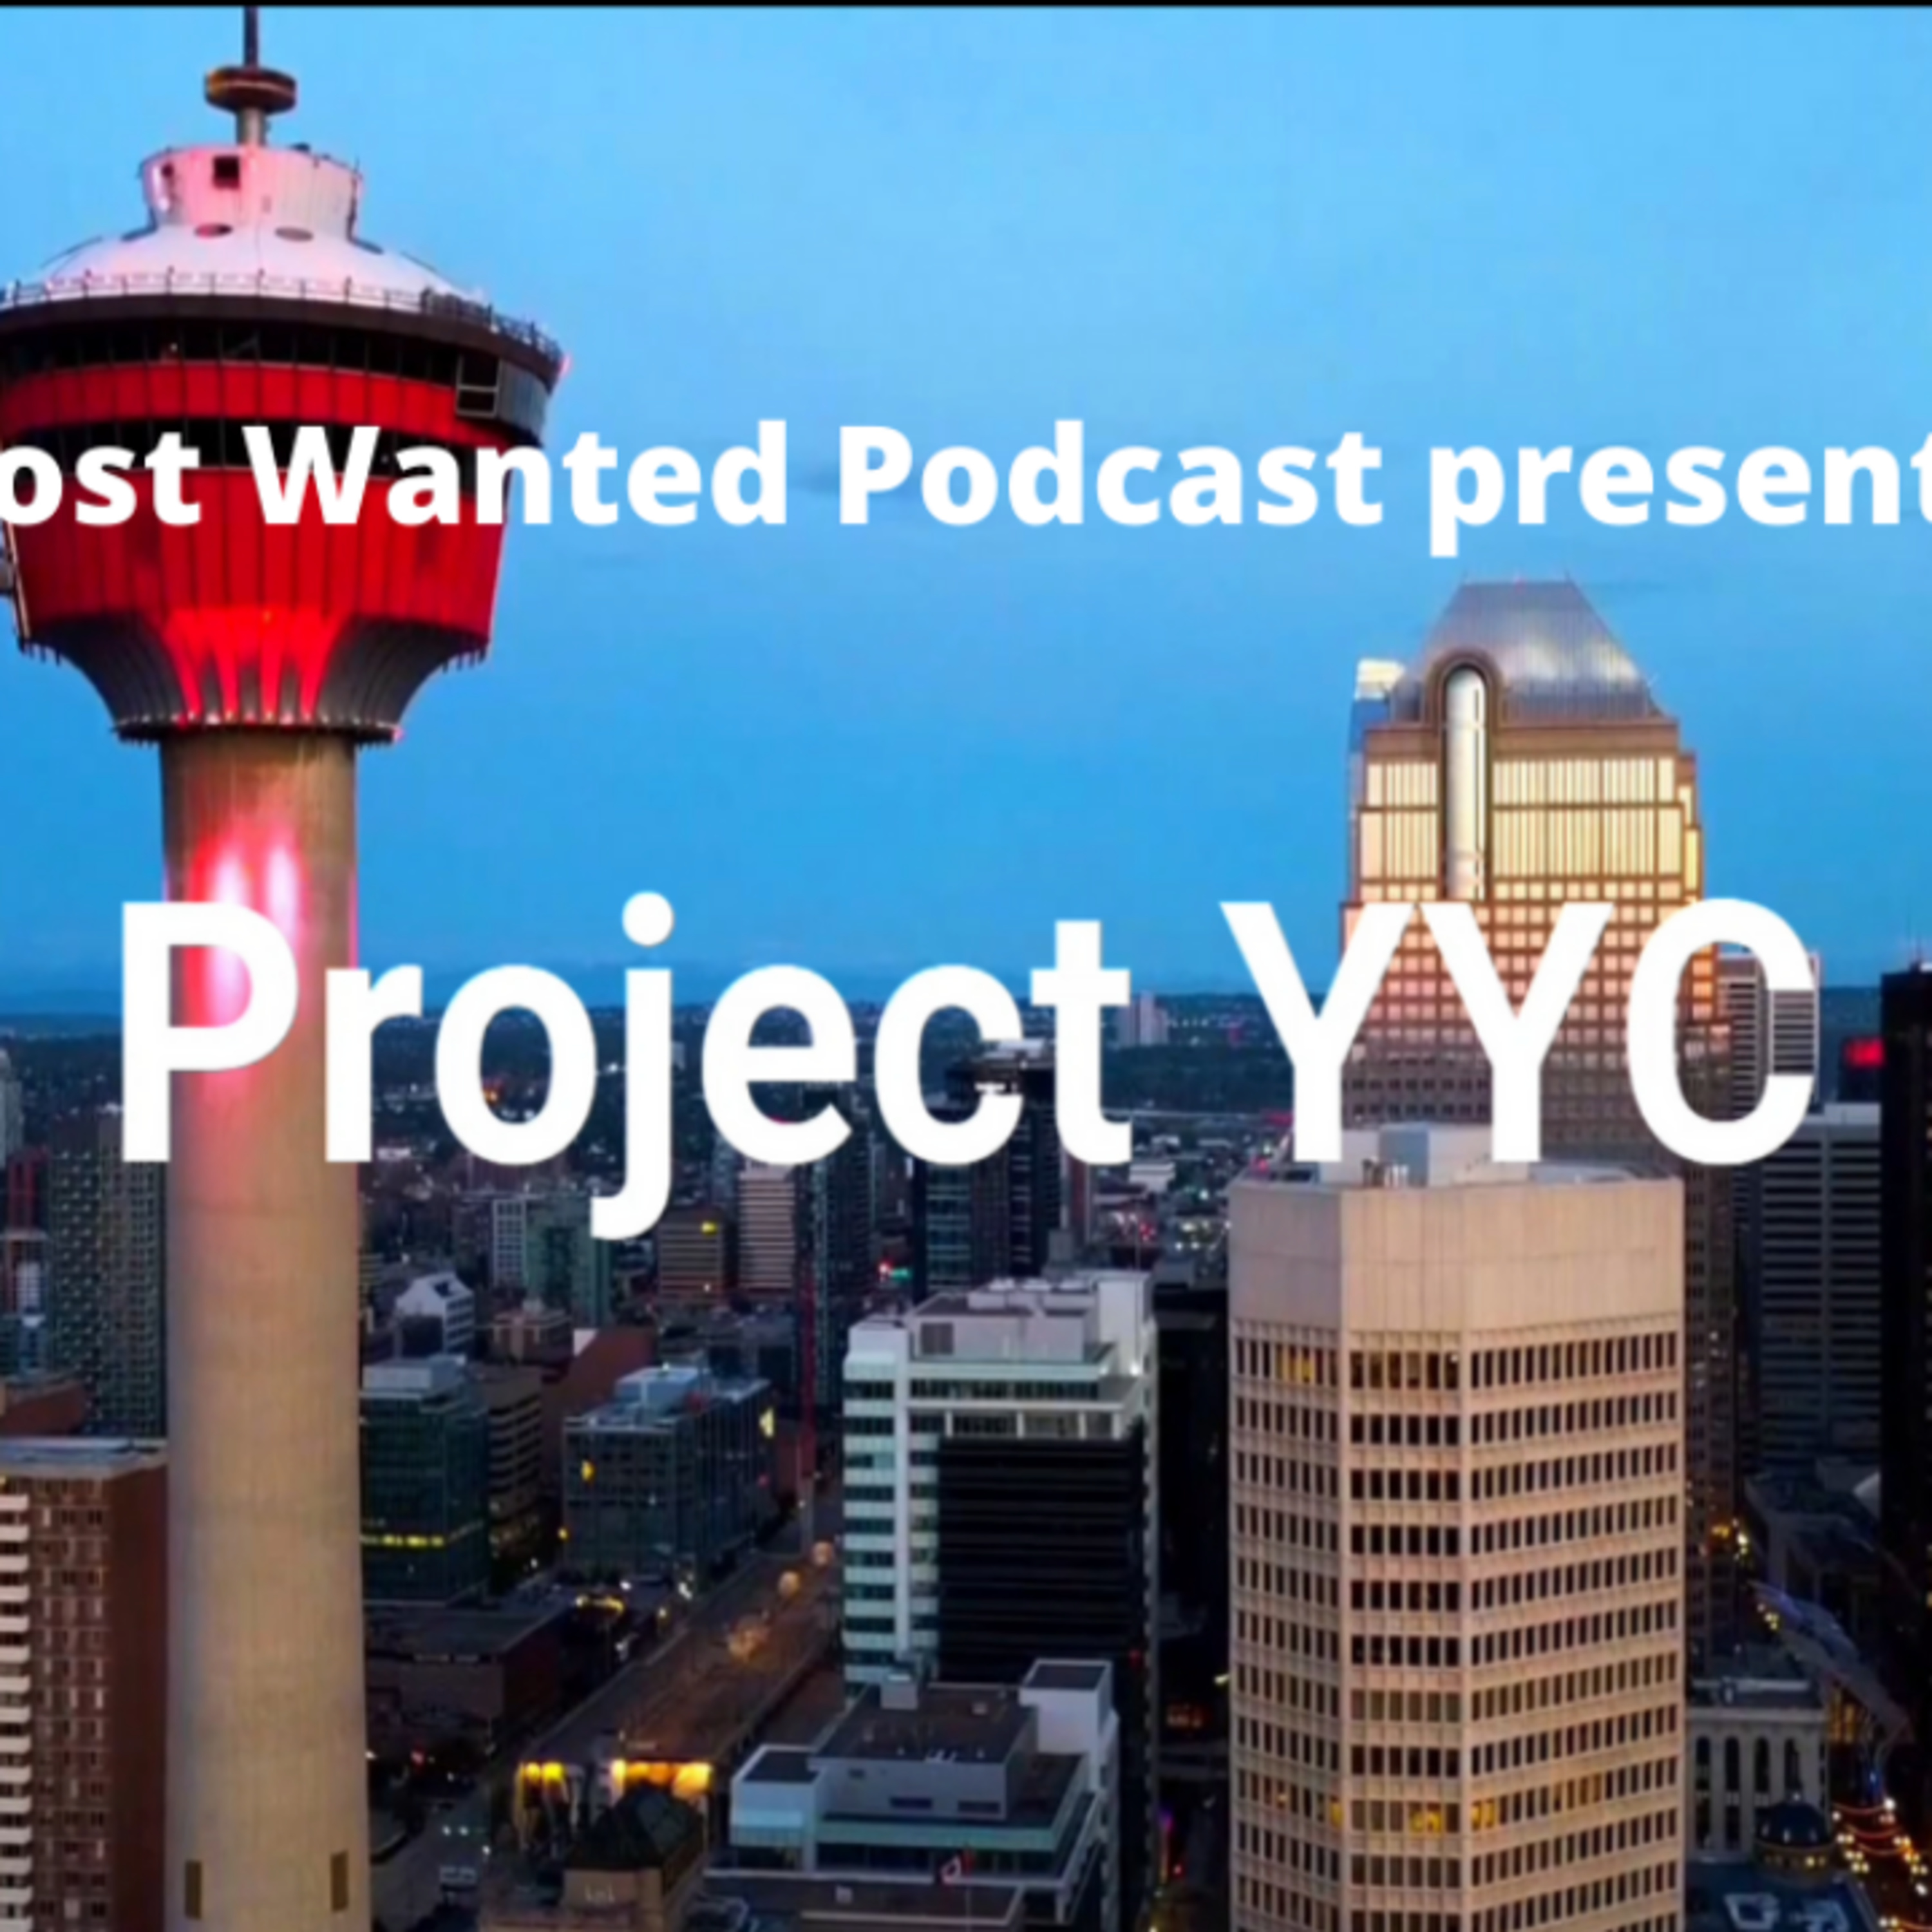 Most Wanted Podcast